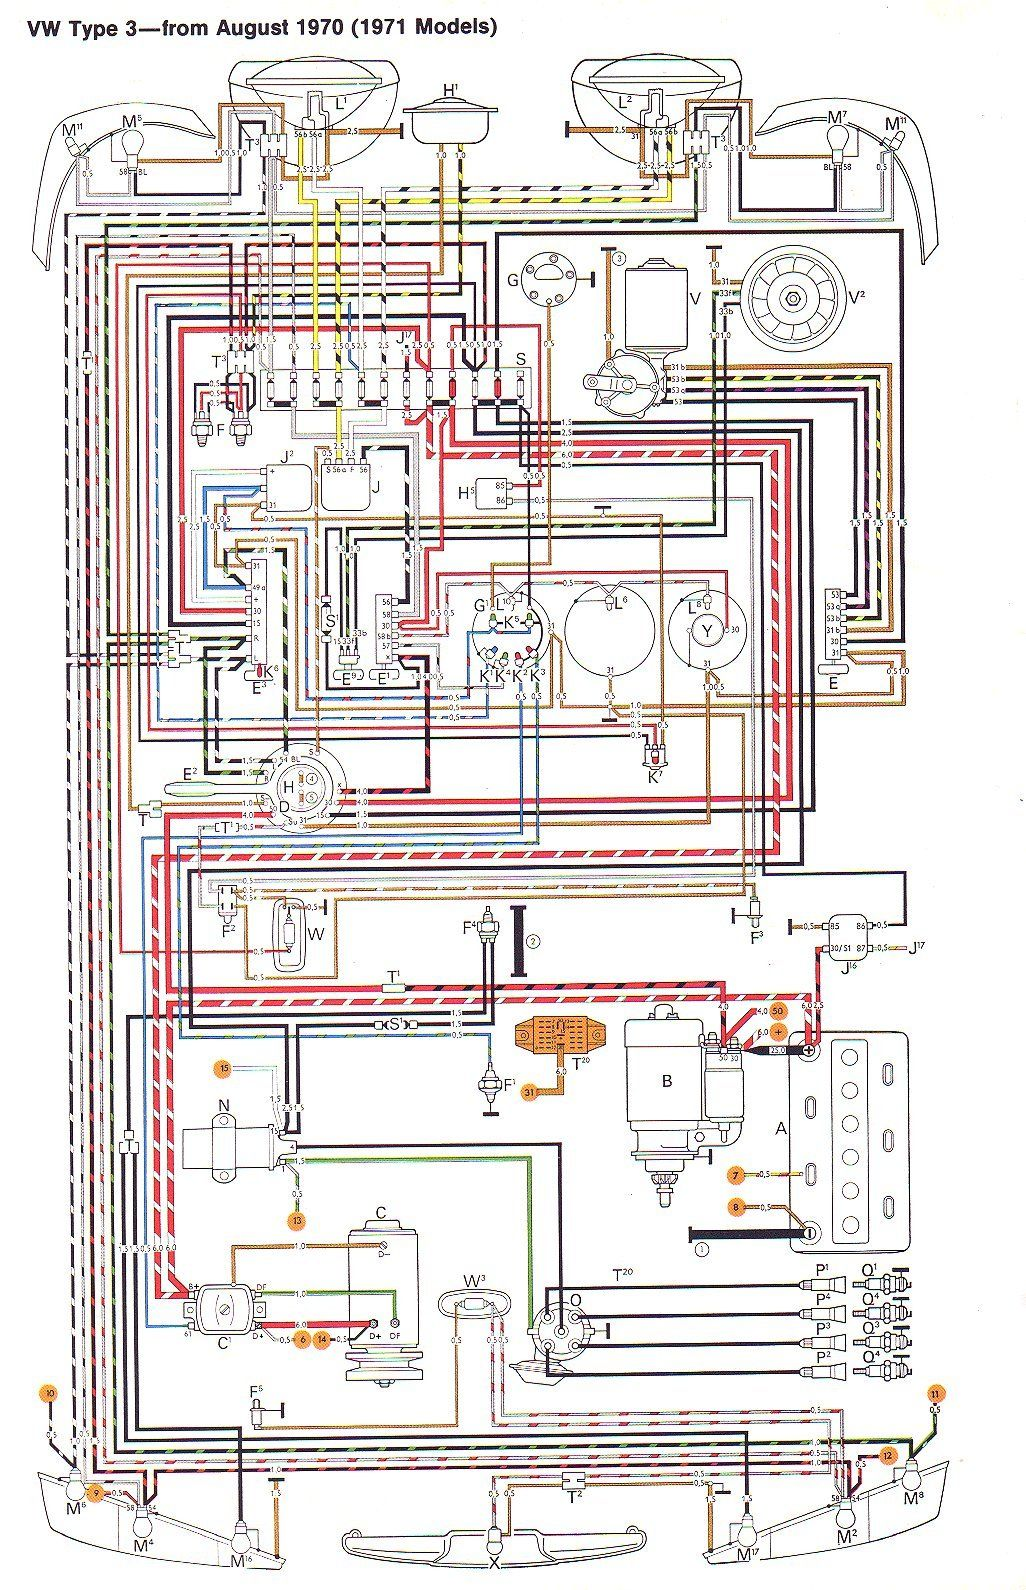 T3 Wiring Harness Library Cat 5 Ether Cable Diagram Hecho 71 Vw Van Interior Type 3 Volkswagen Vintage